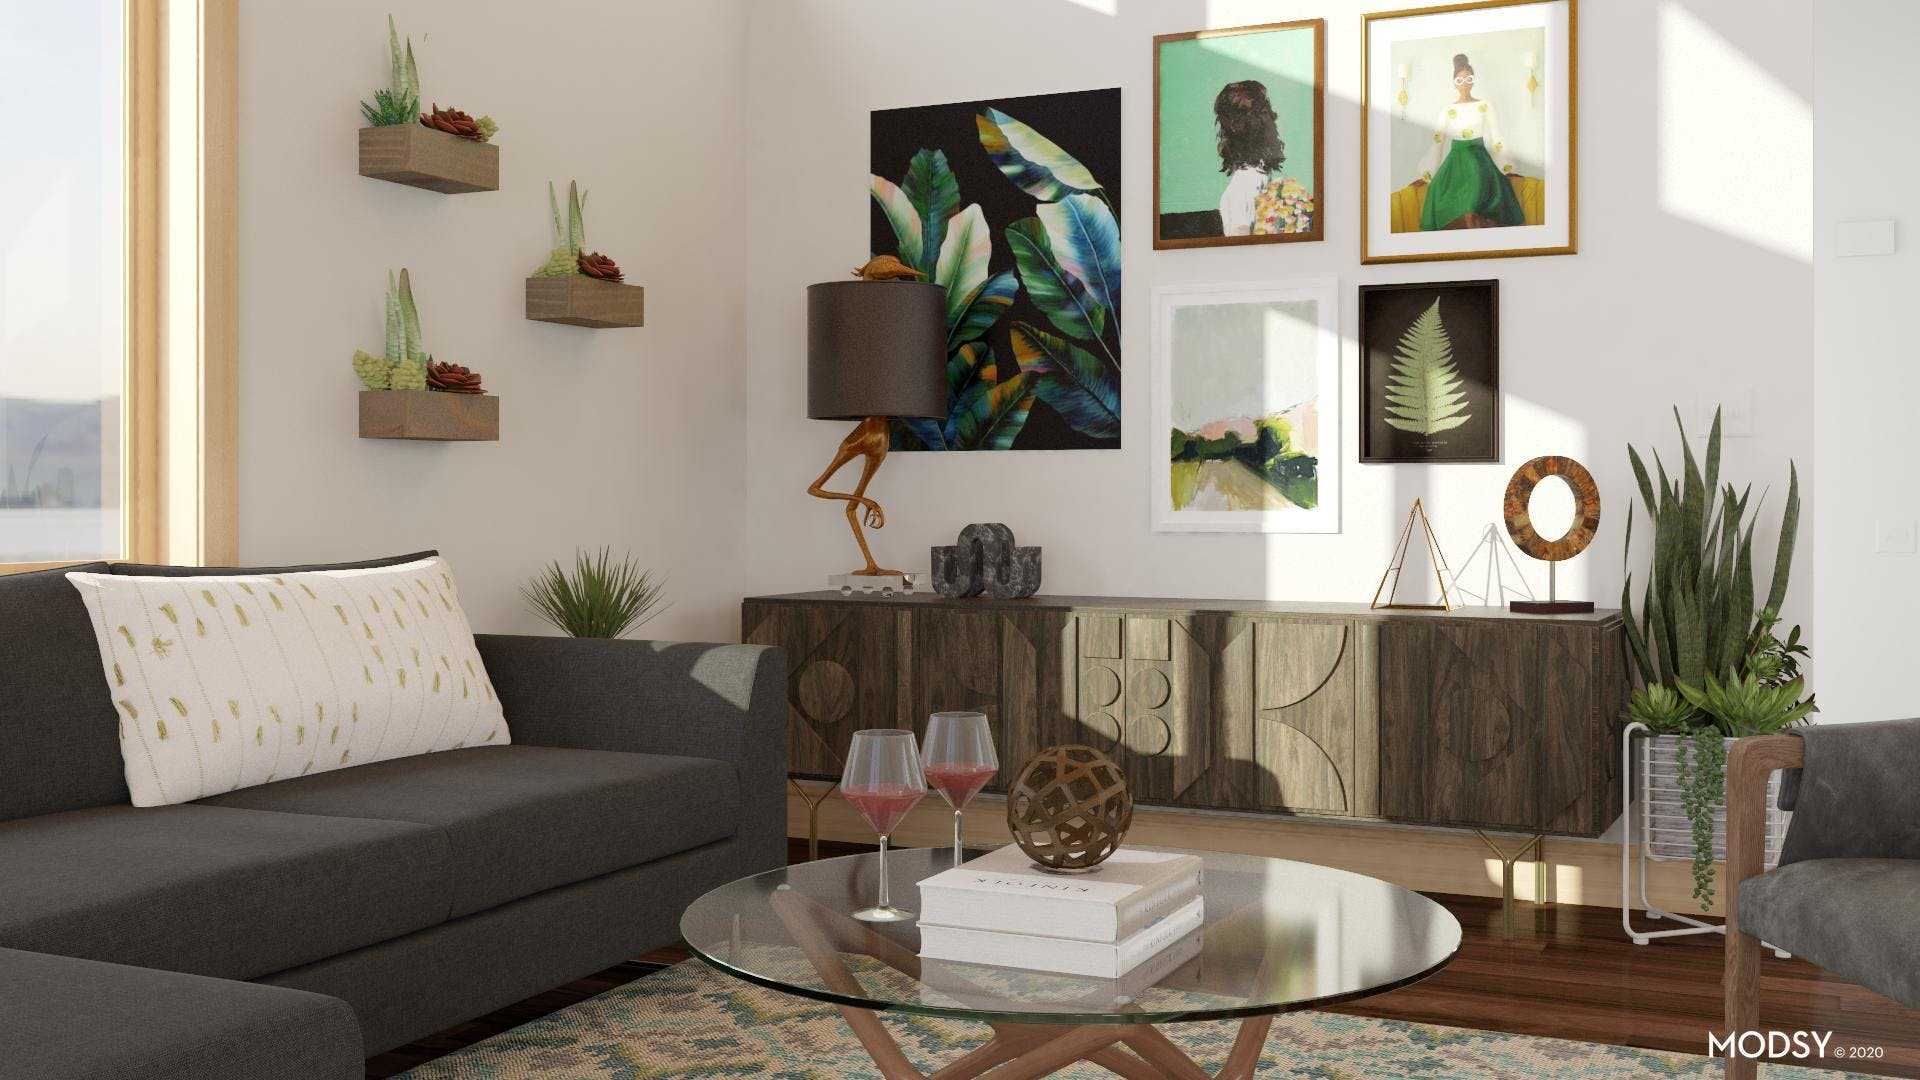 Lively Details: Adding Plants To A Room